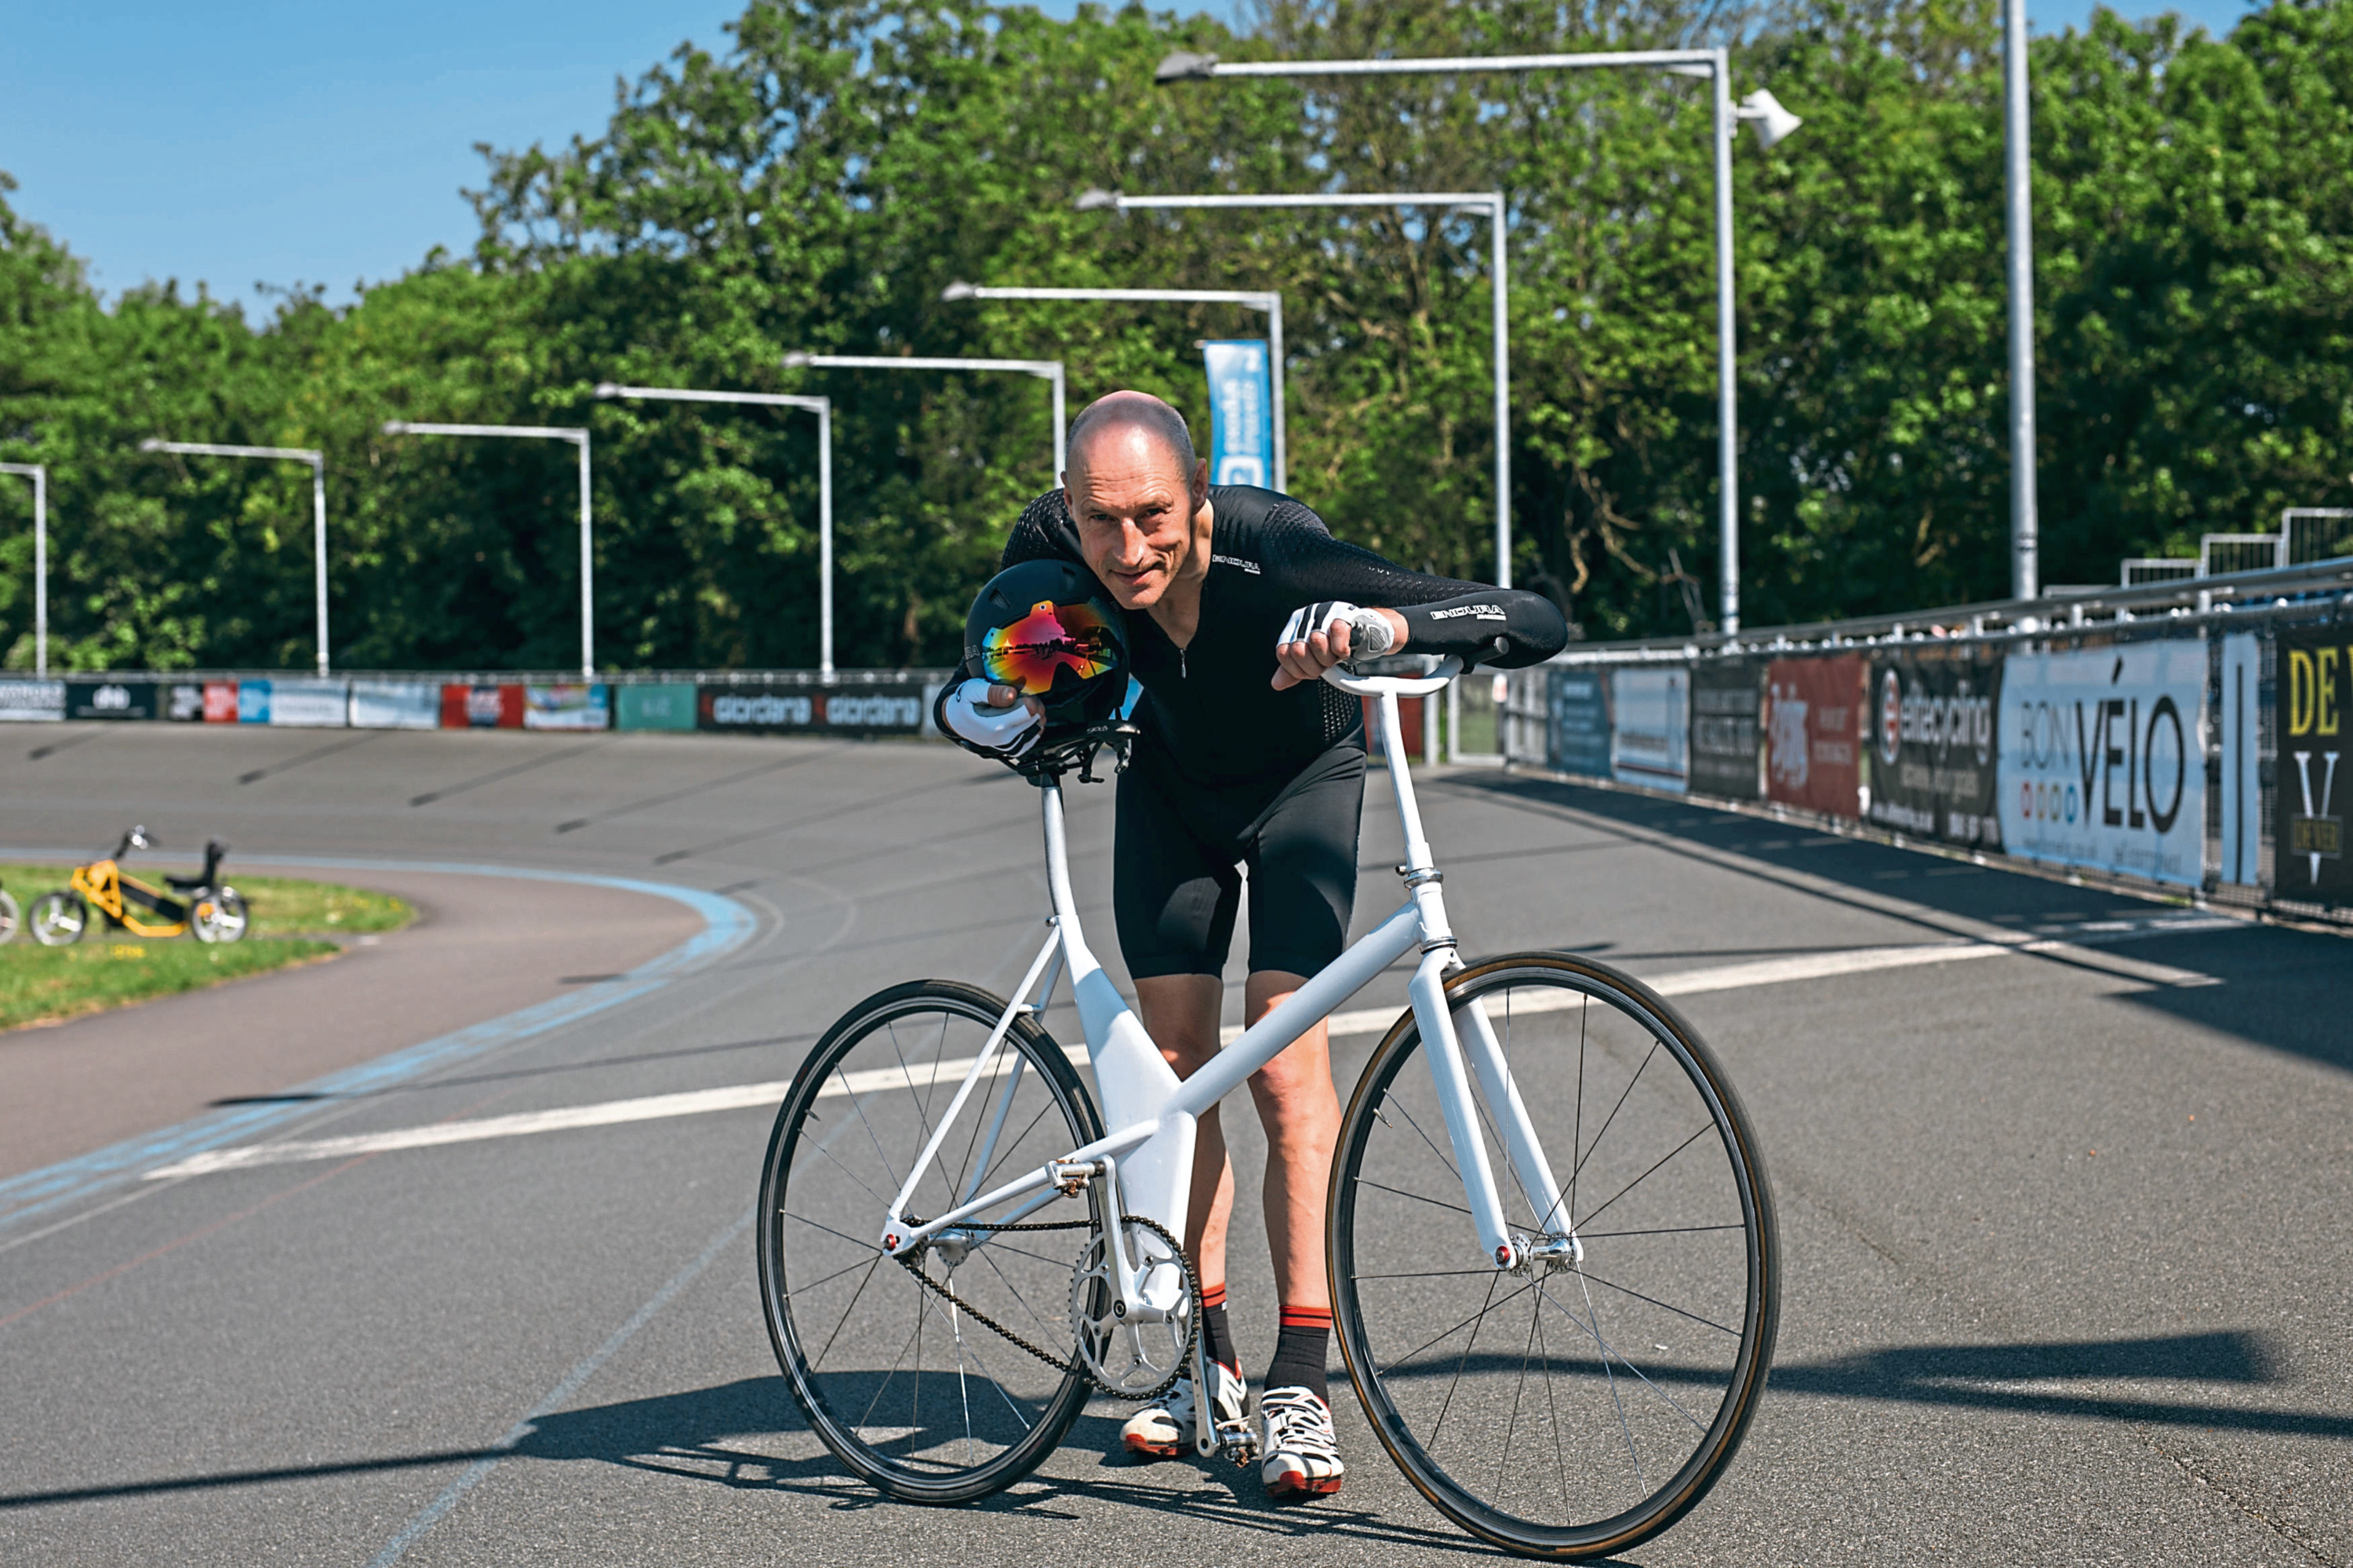 Scottish athlete Graeme Obree